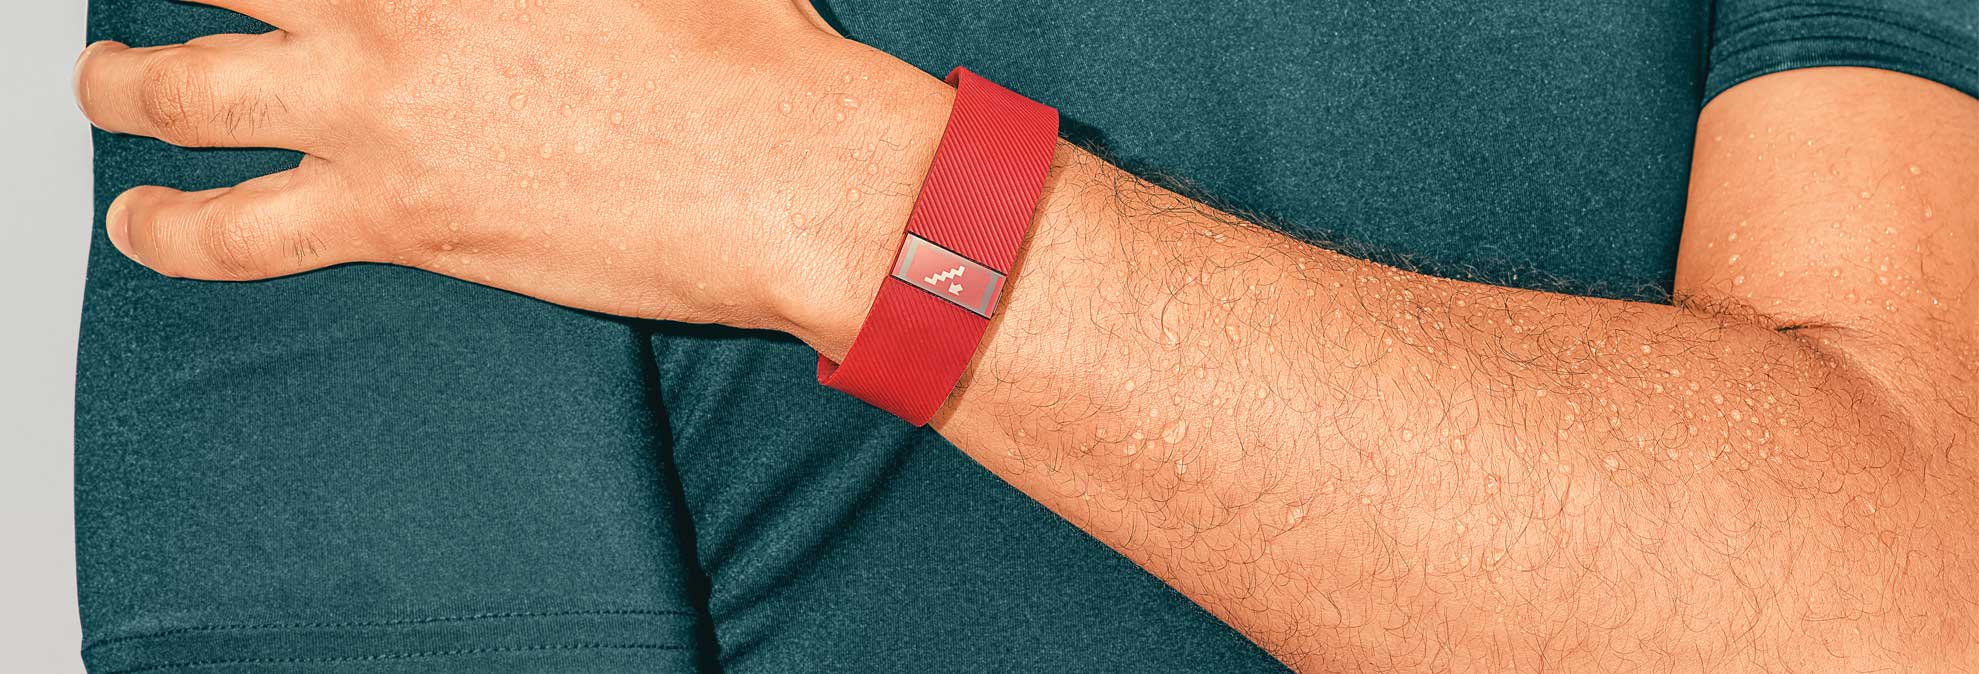 Why Are Fitness Tracker Bands So Fragile? - Consumer Reports